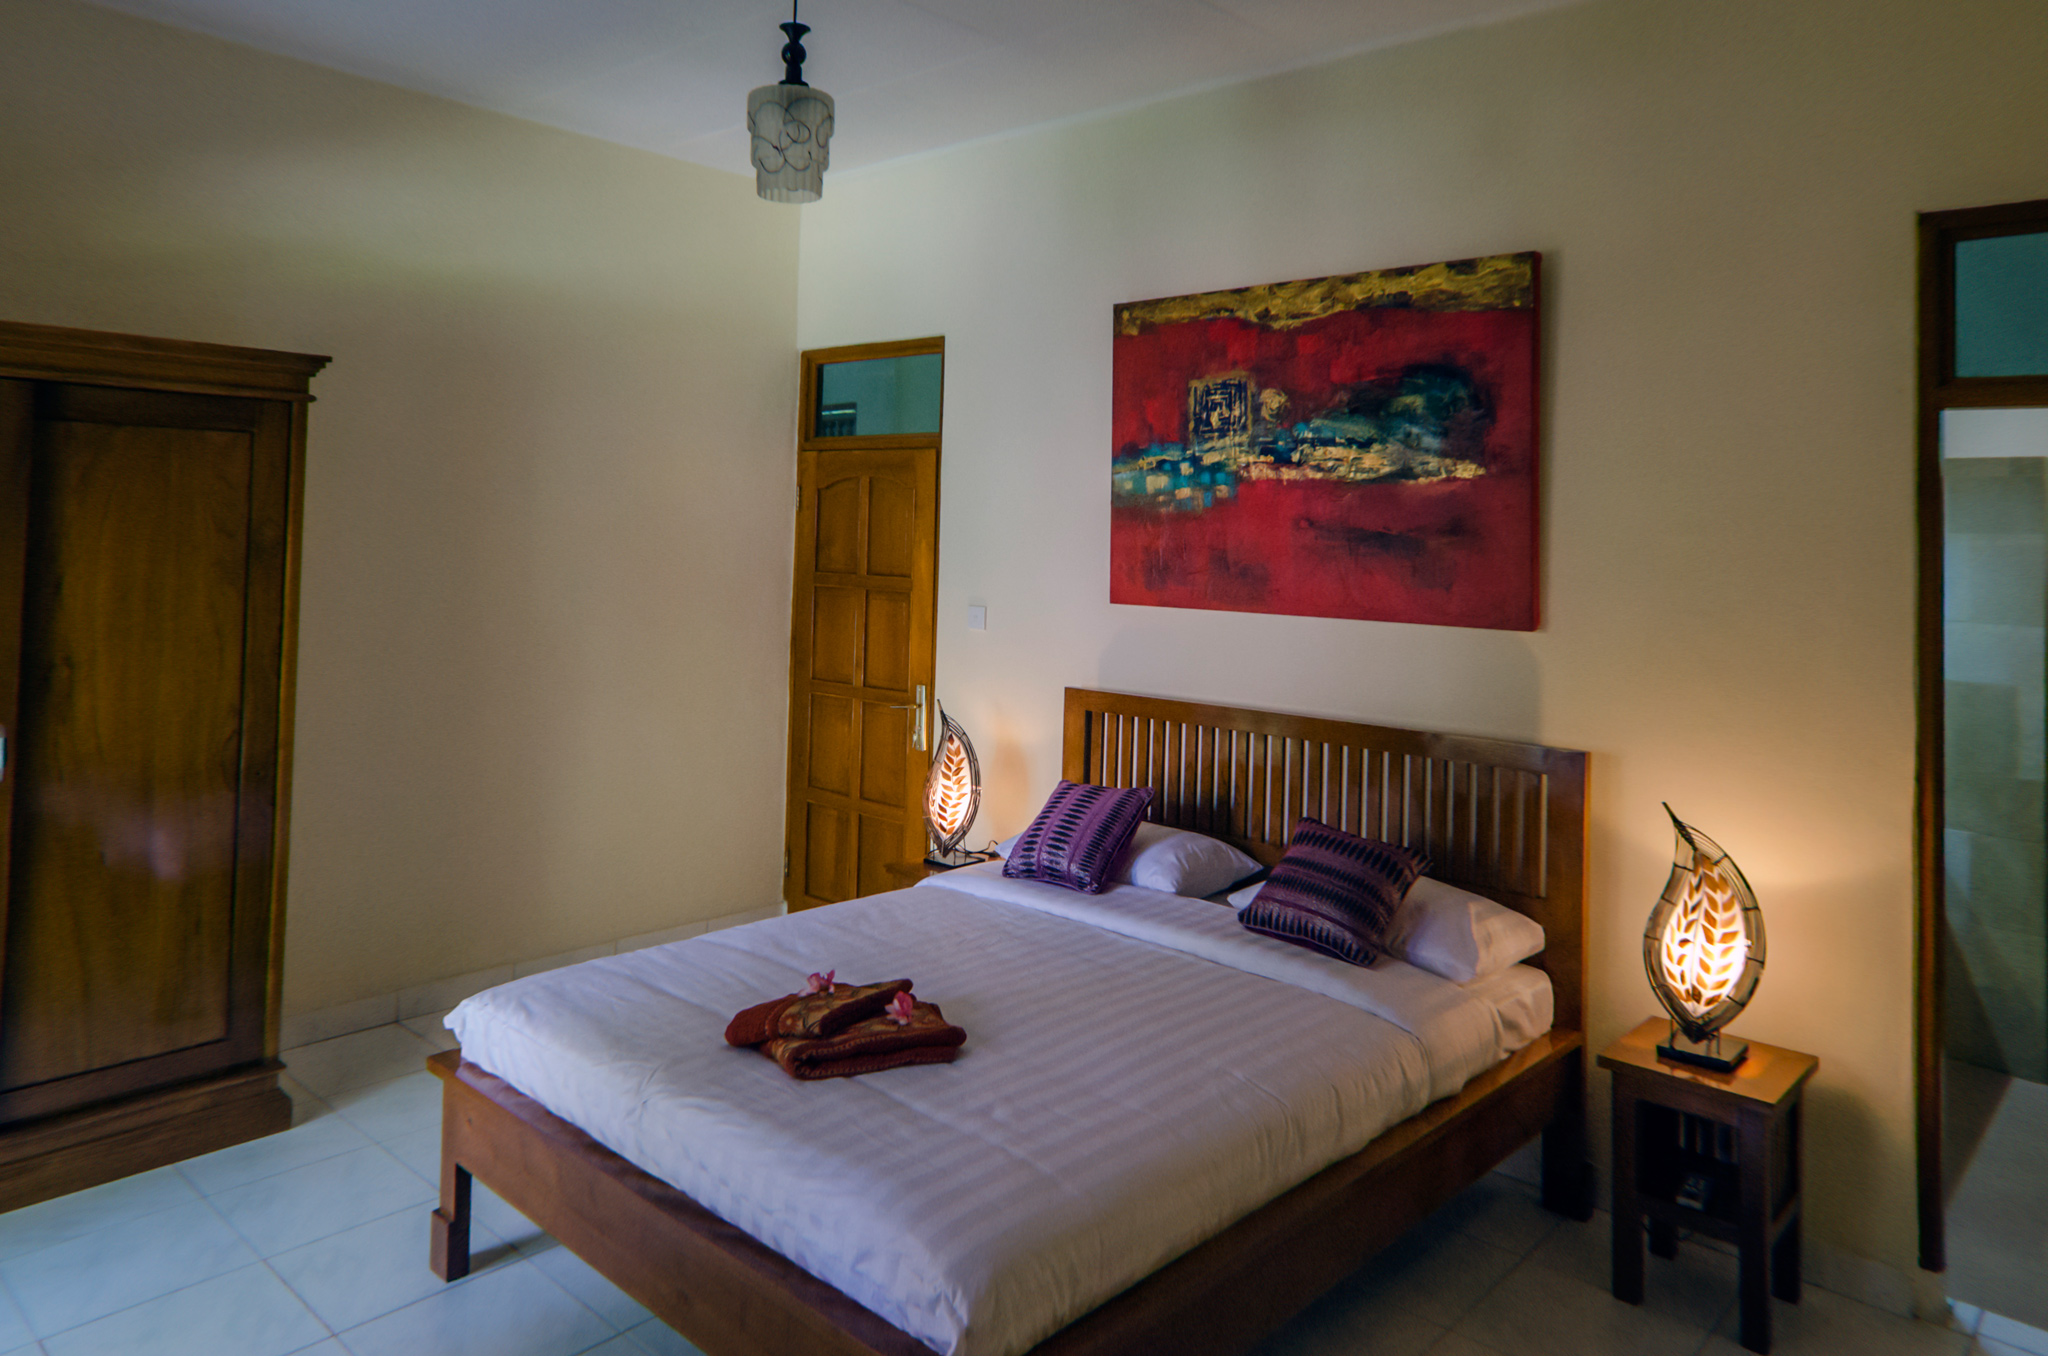 Ima guesthouse All rooms have AC ,cold and hot water shower, double bed , wardrobe , reading lights with small tables and terrace with chairs and table.